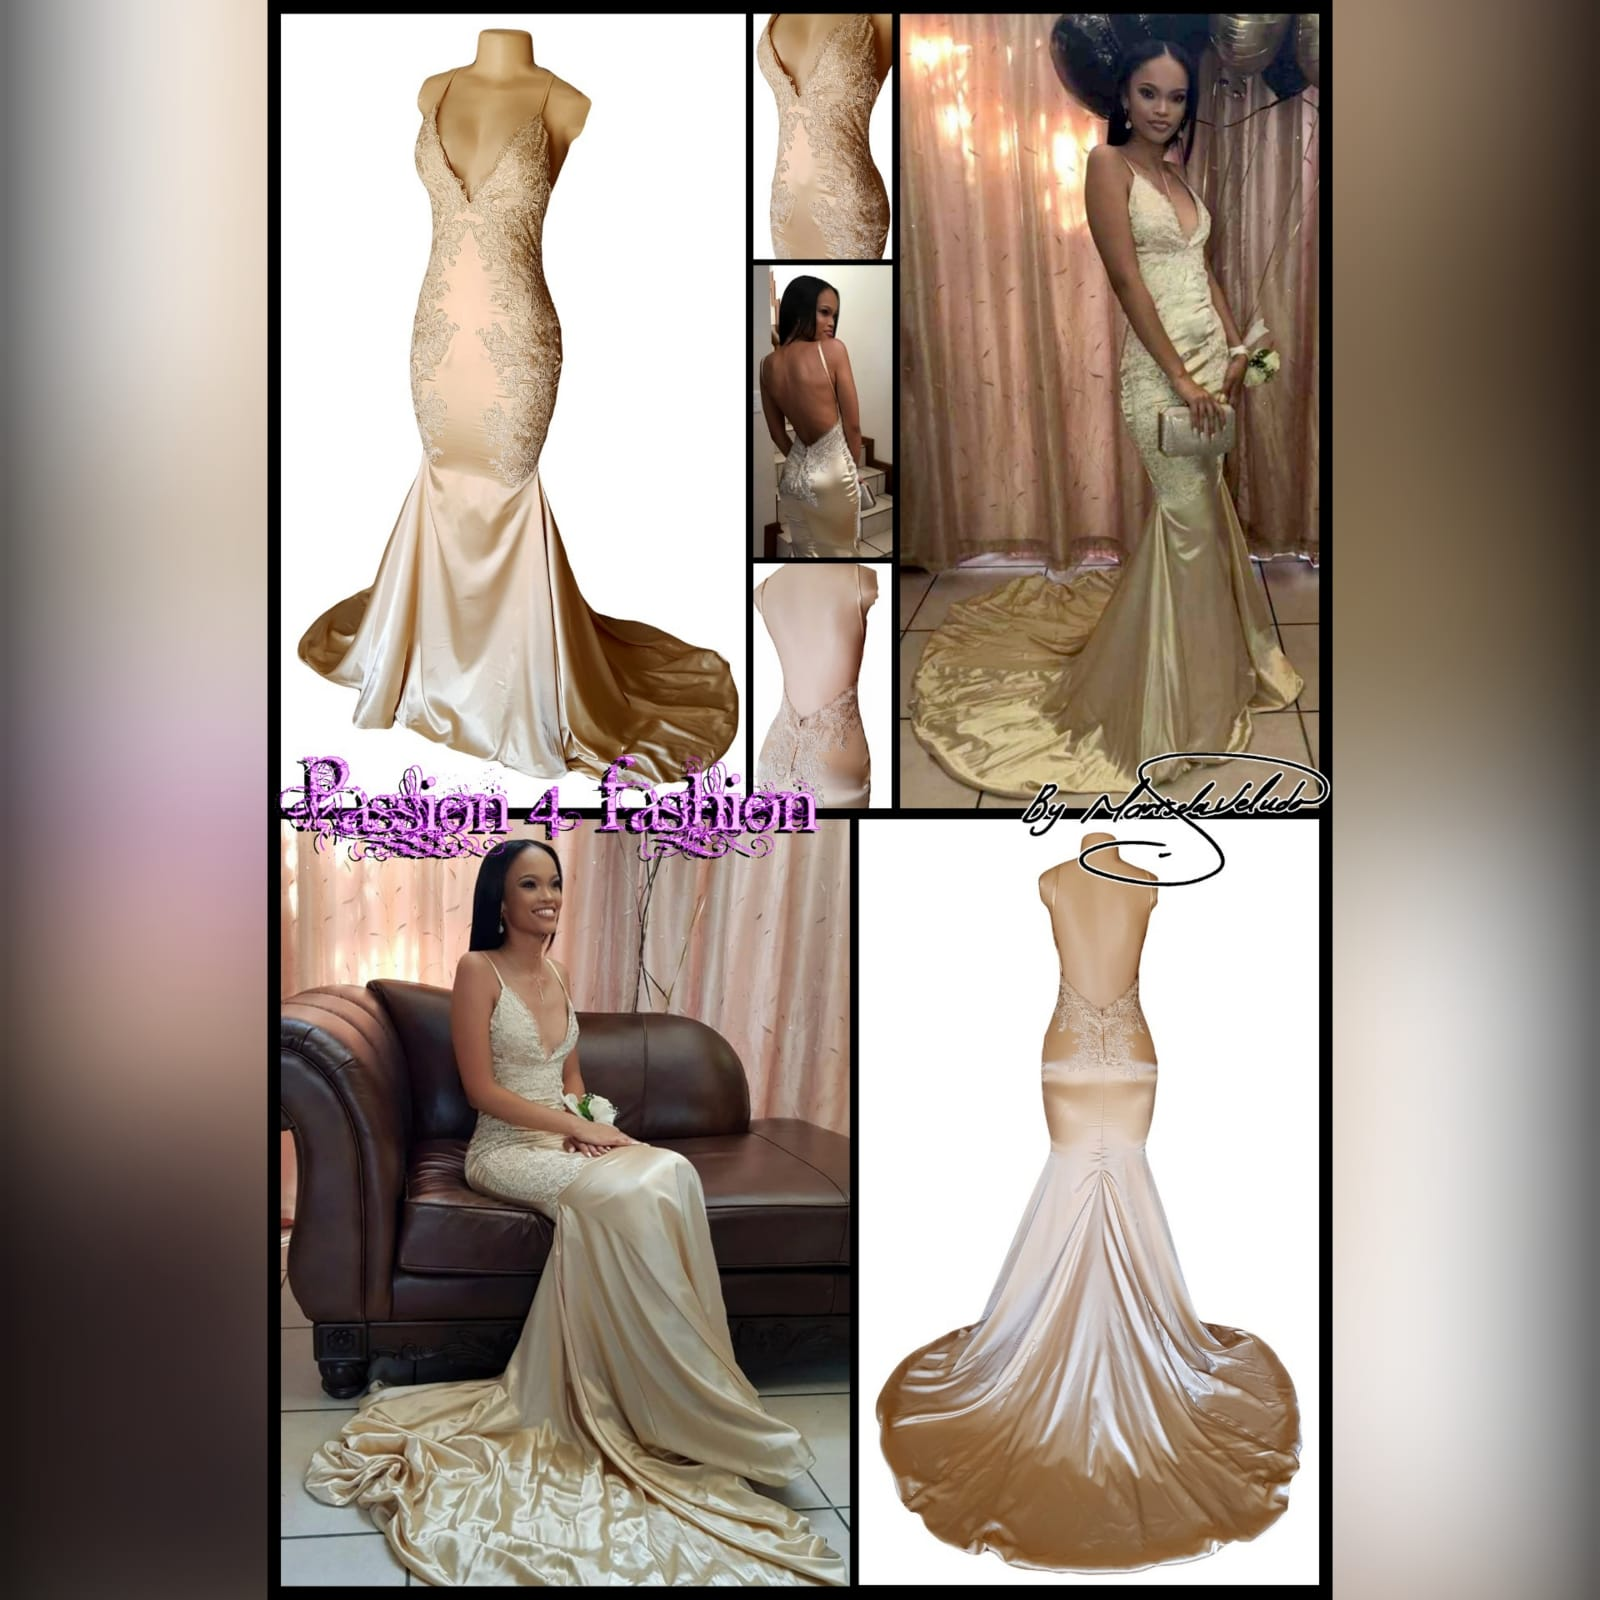 Gold satin soft mermaid matric farewell dress 7 gold satin soft mermaid matric farewell dress with a v neckline, a naked back and long train. Bodice hips and back detailed with lace.